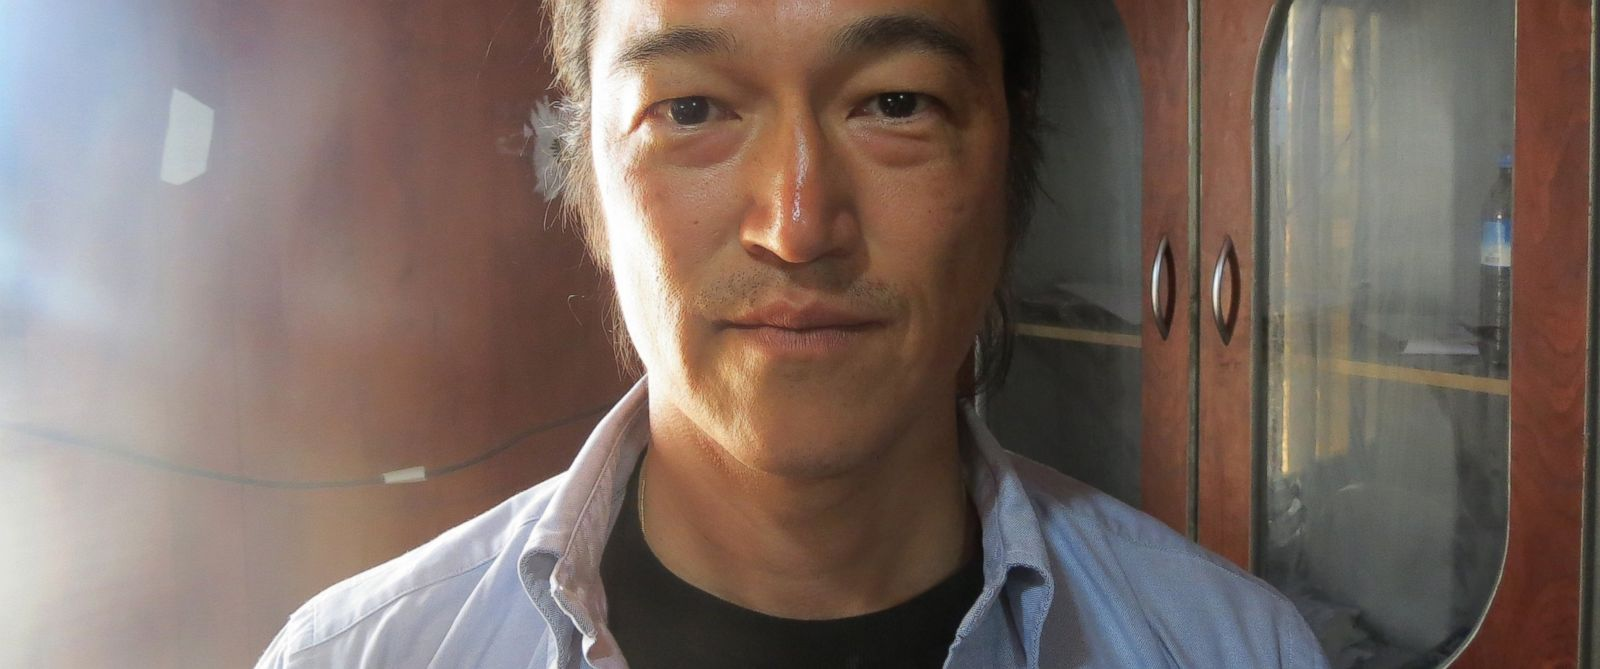 PHOTO: Japanese journalist Kenji Goto is seen in this file photo dated April 25, 2014.